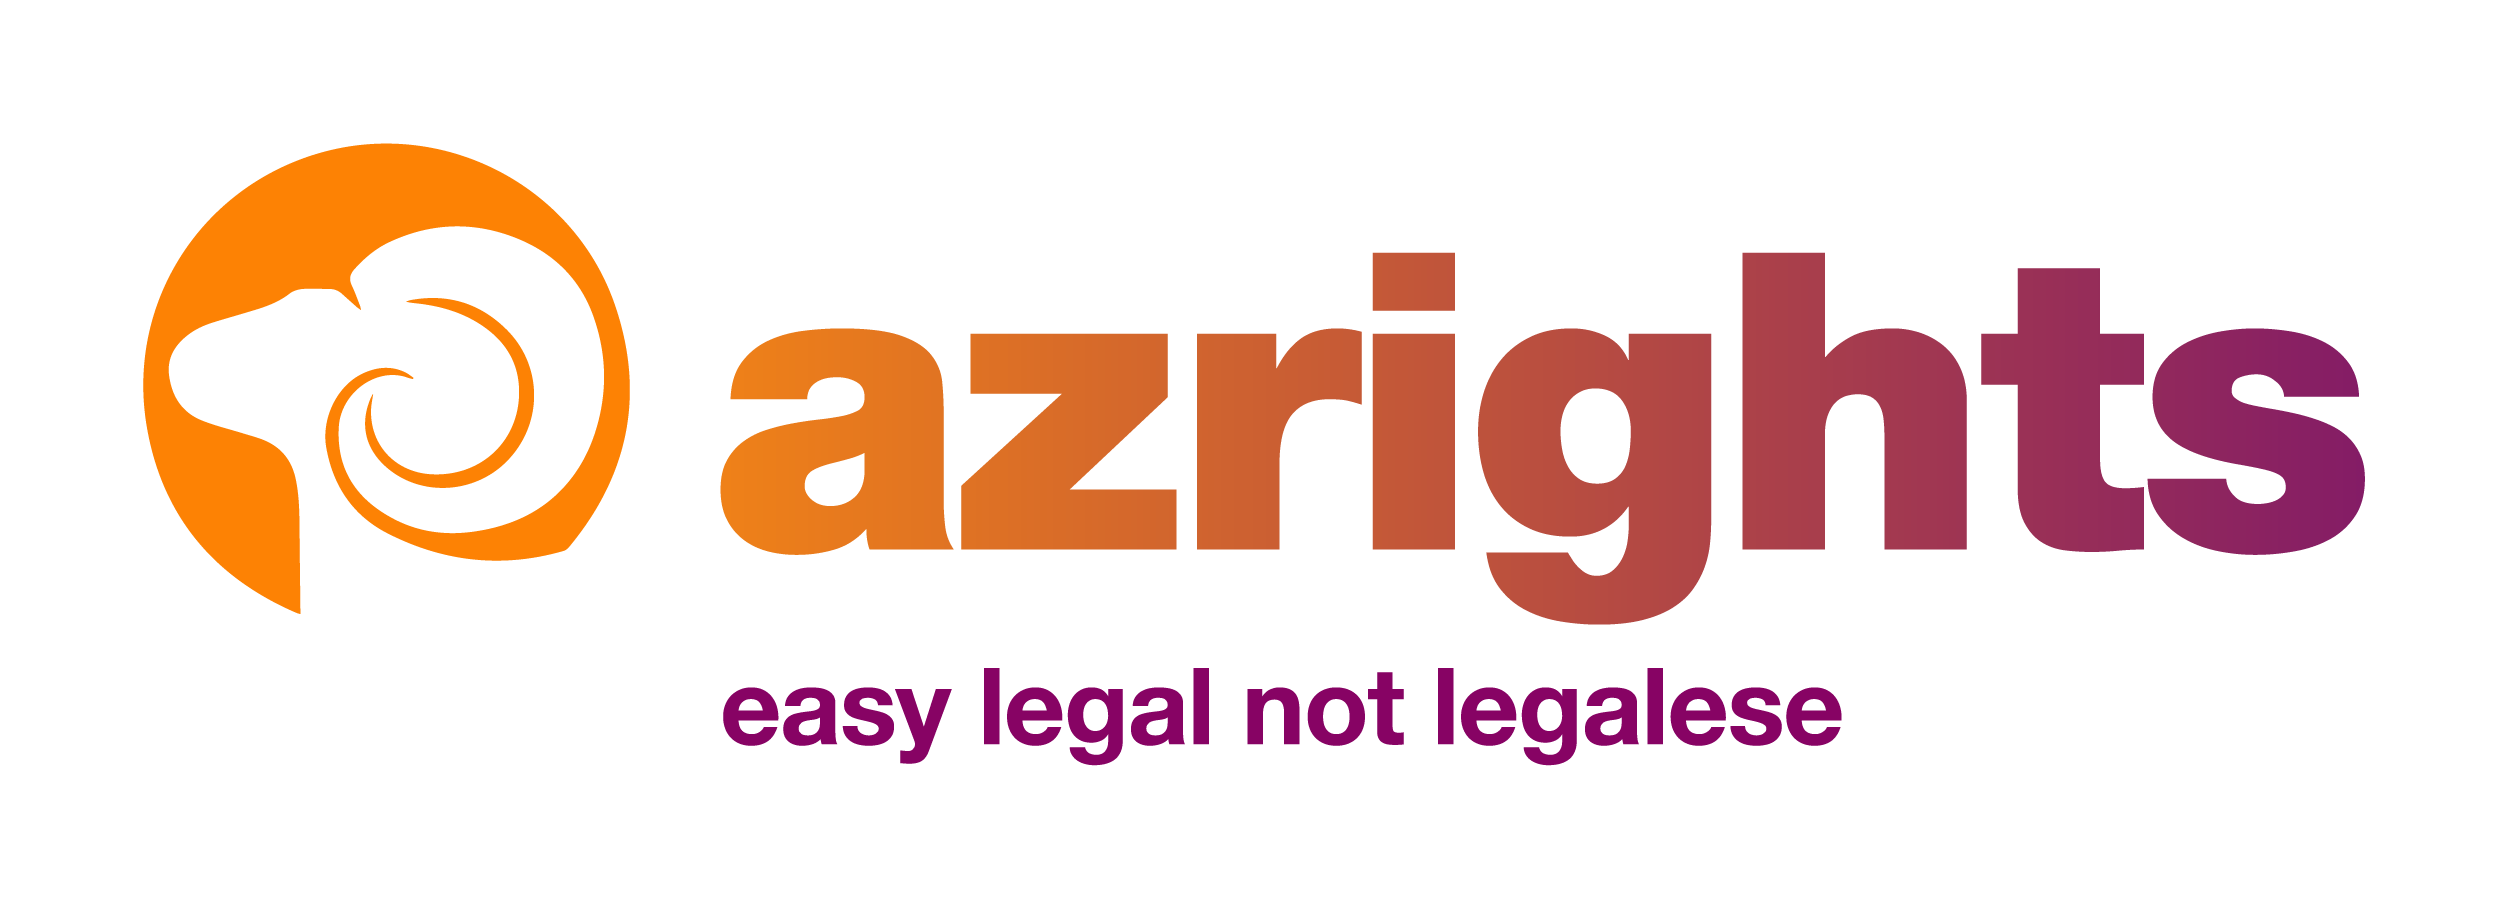 Azrights Solicitors, Intellectual Property and Internet Lawyers, London